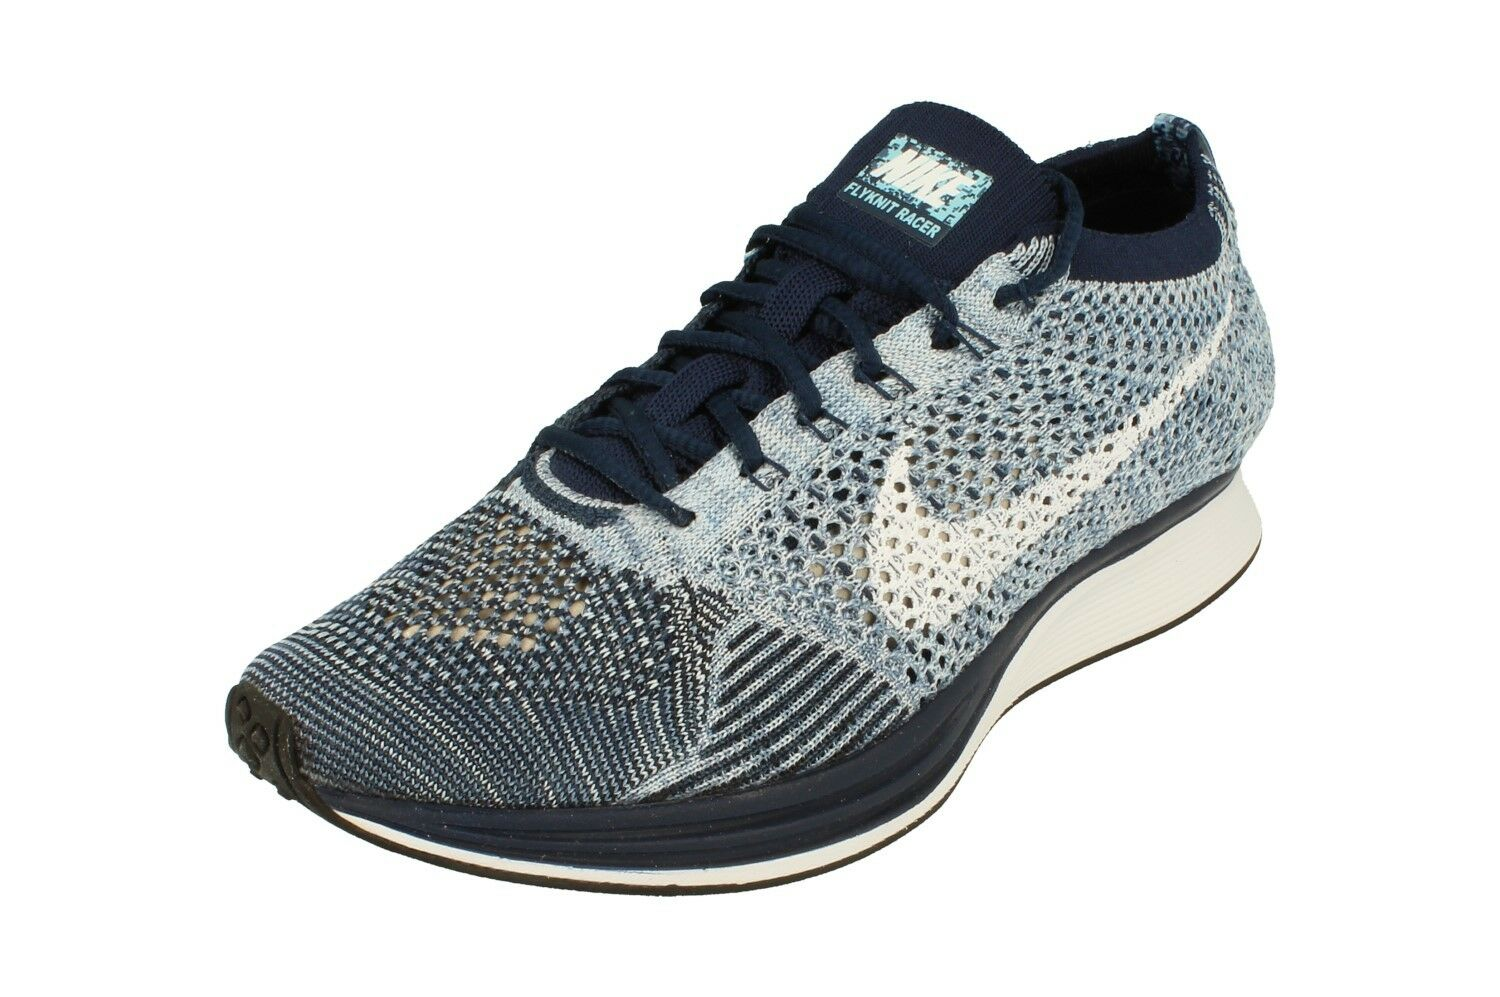 Nike Flyknit Racer Mens Running Trainers 862713 Sneakers Shoes 401